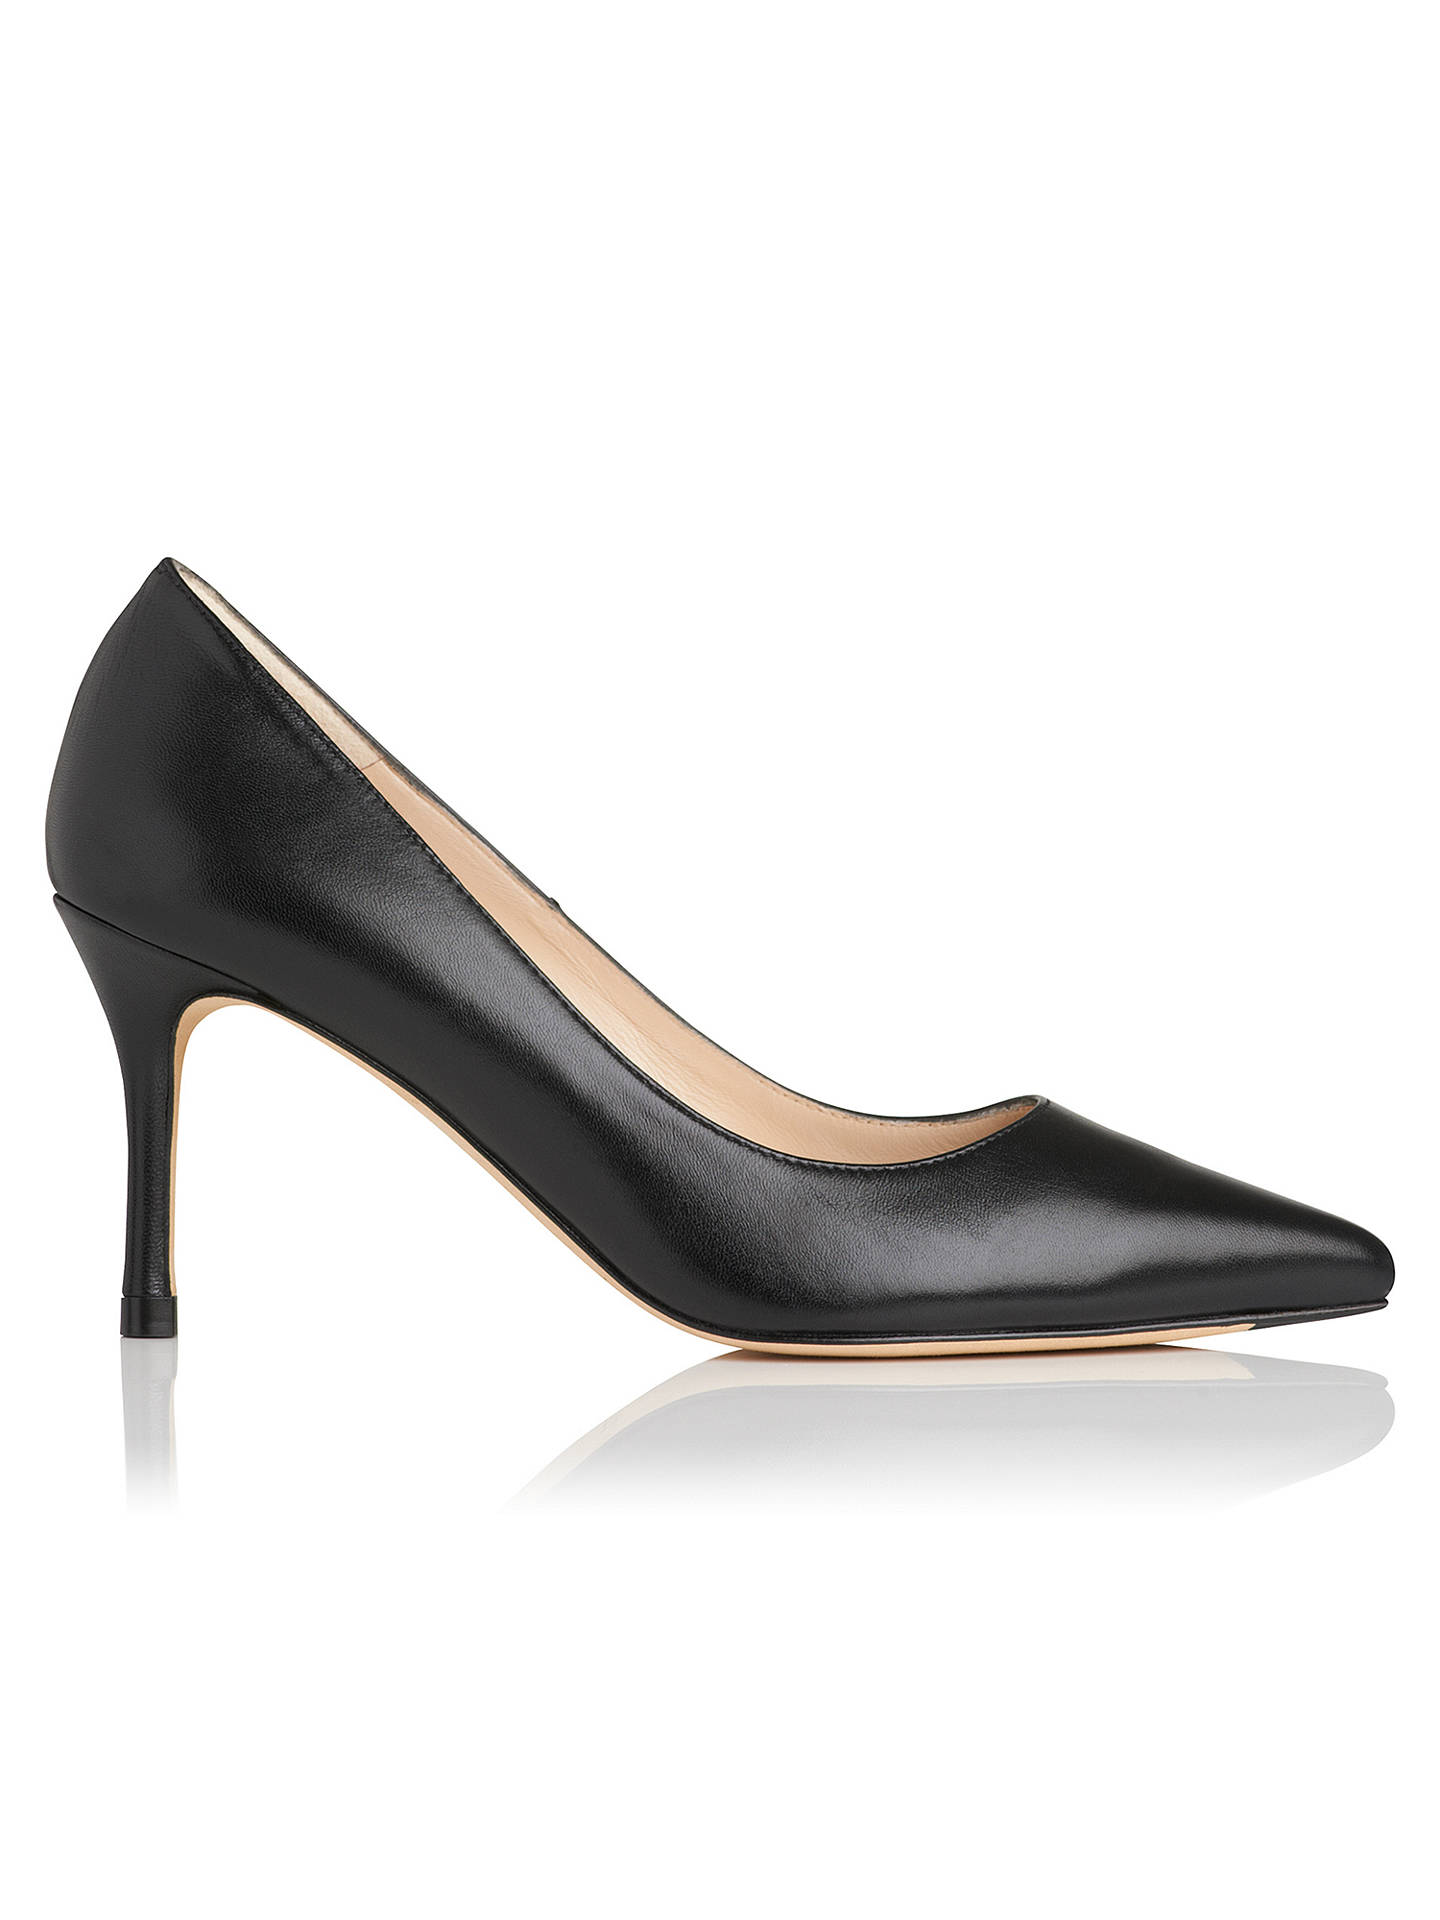 2f02f1cb164 L.K. Bennett Bianca Pointed Toe Court Shoes at John Lewis & Partners